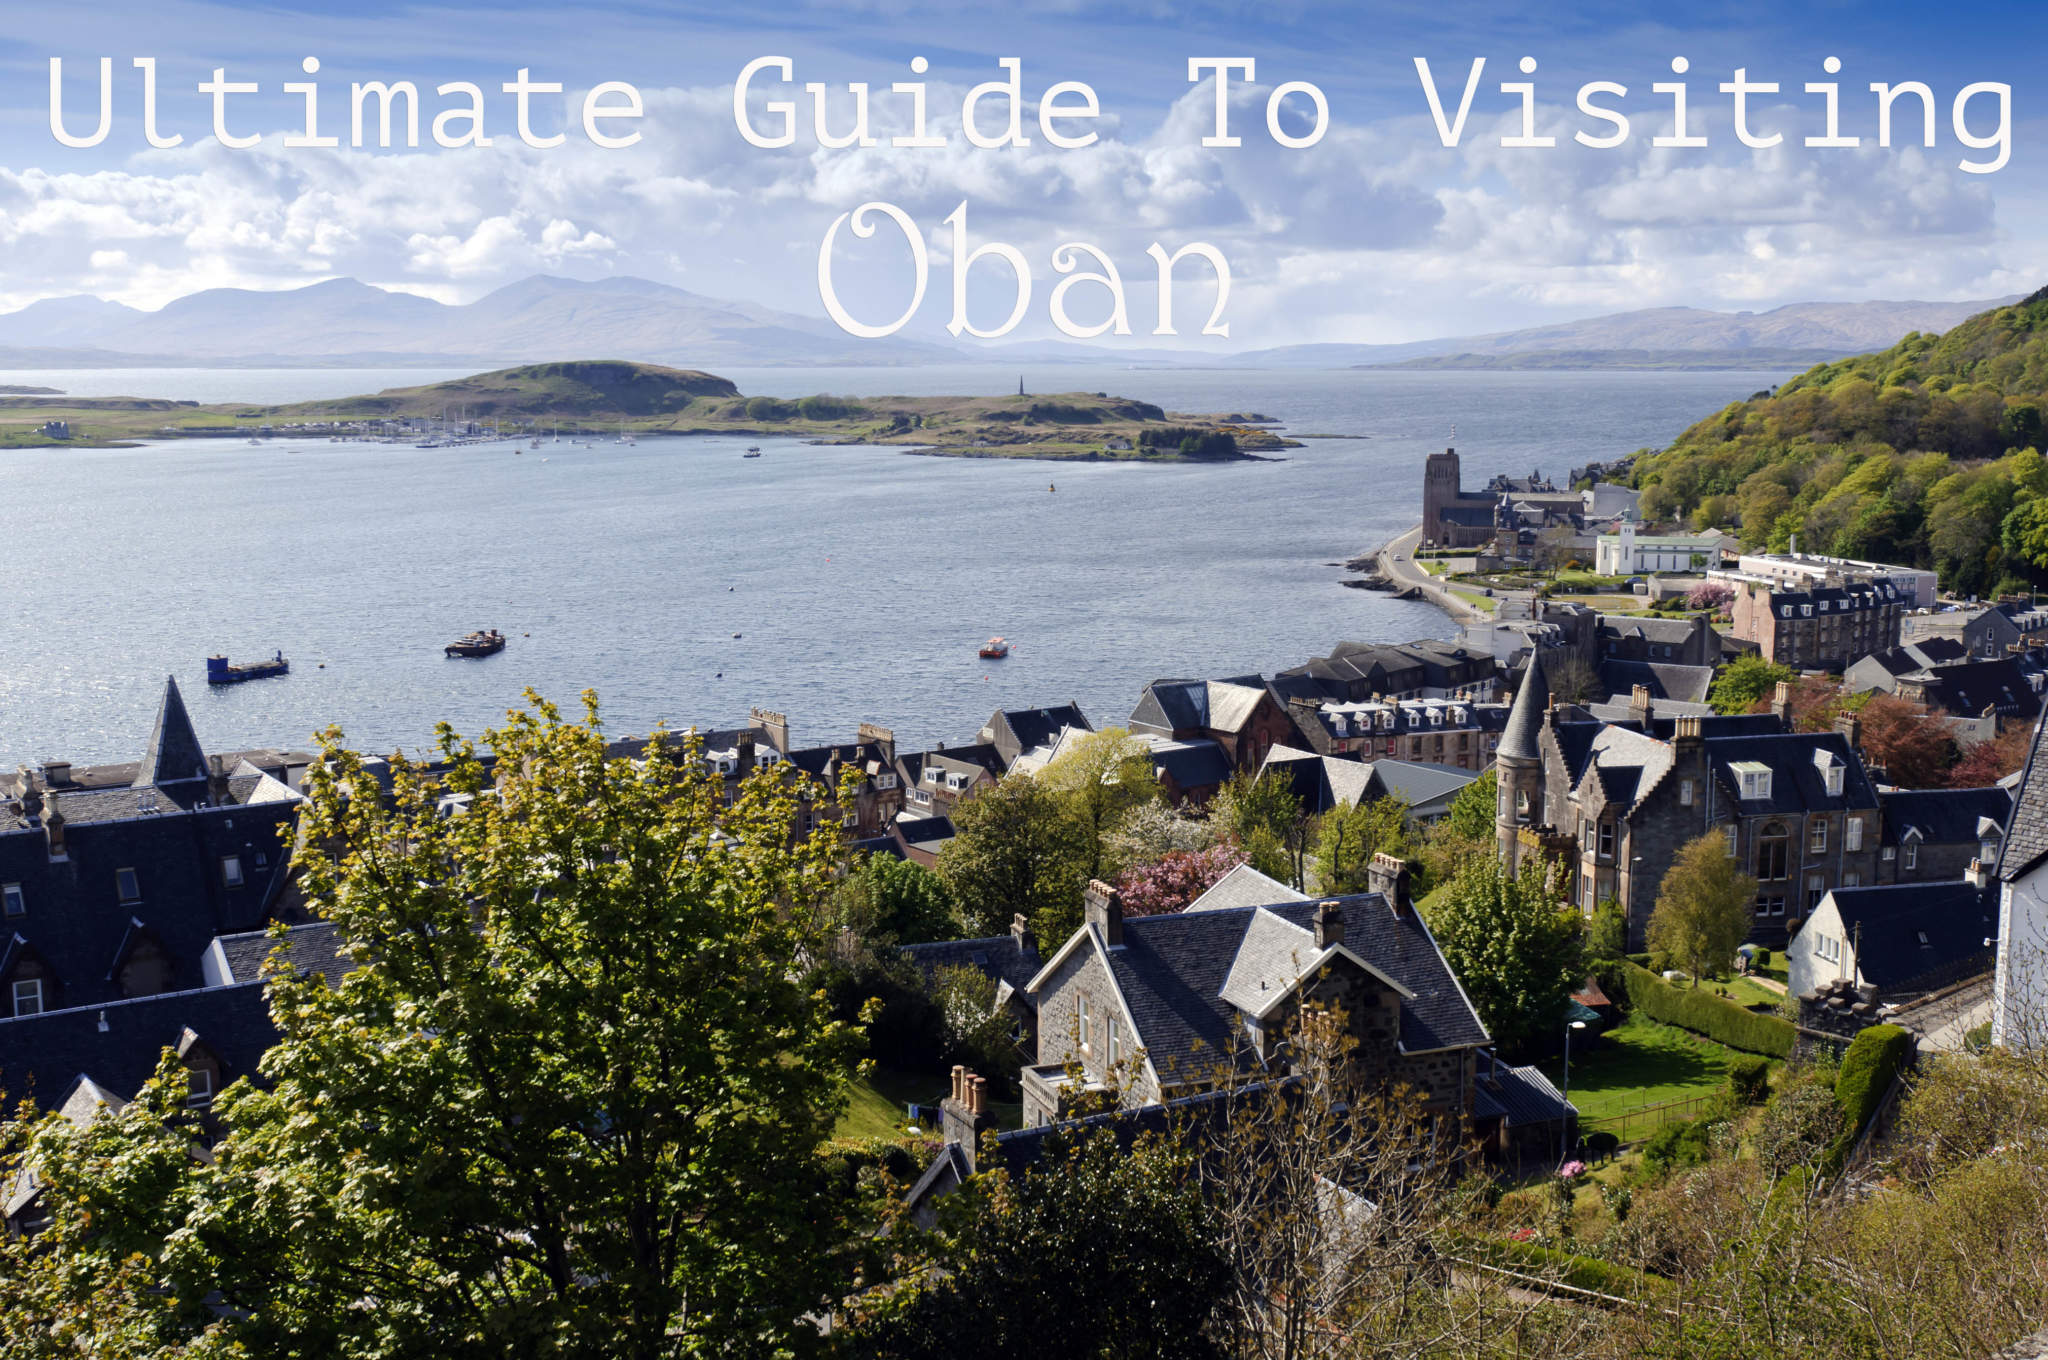 Ultimate Guide to Visiting Oban